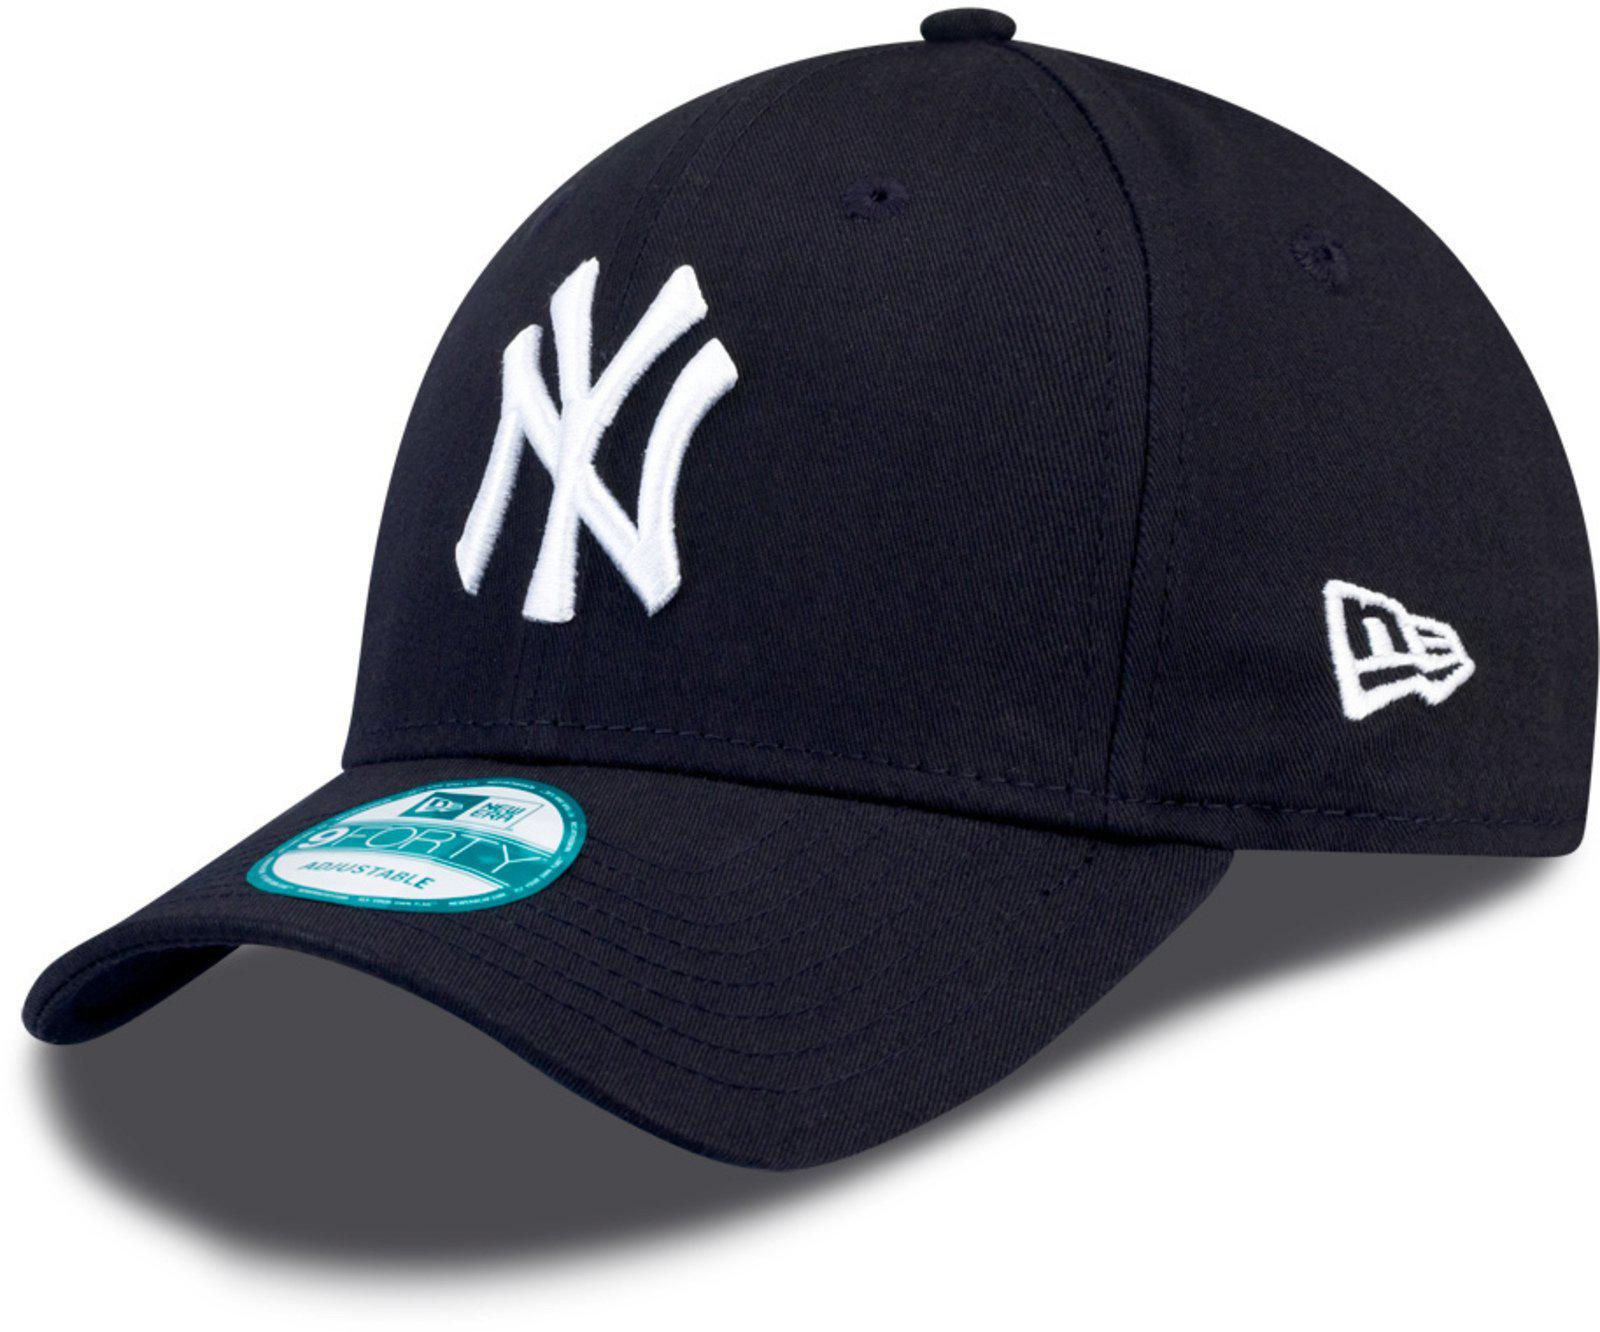 95a5a99f7a5 KTZ 9forty New York Yankees Adjustable Baseball Cap in Blue for Men ...